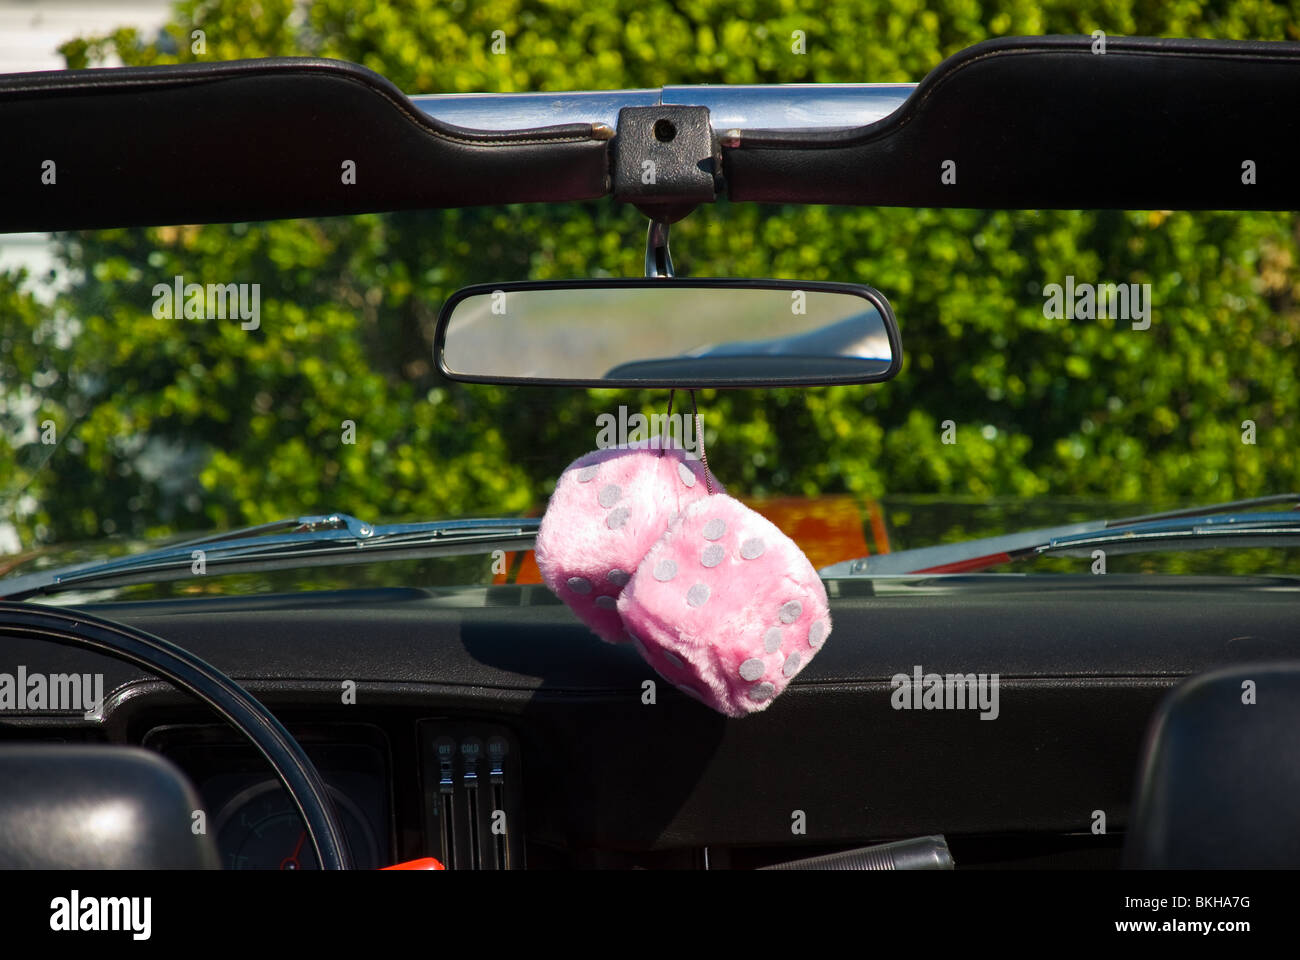 A Pair Of Pink Fuzzy Dice Hang From The Rearview Mirror Of